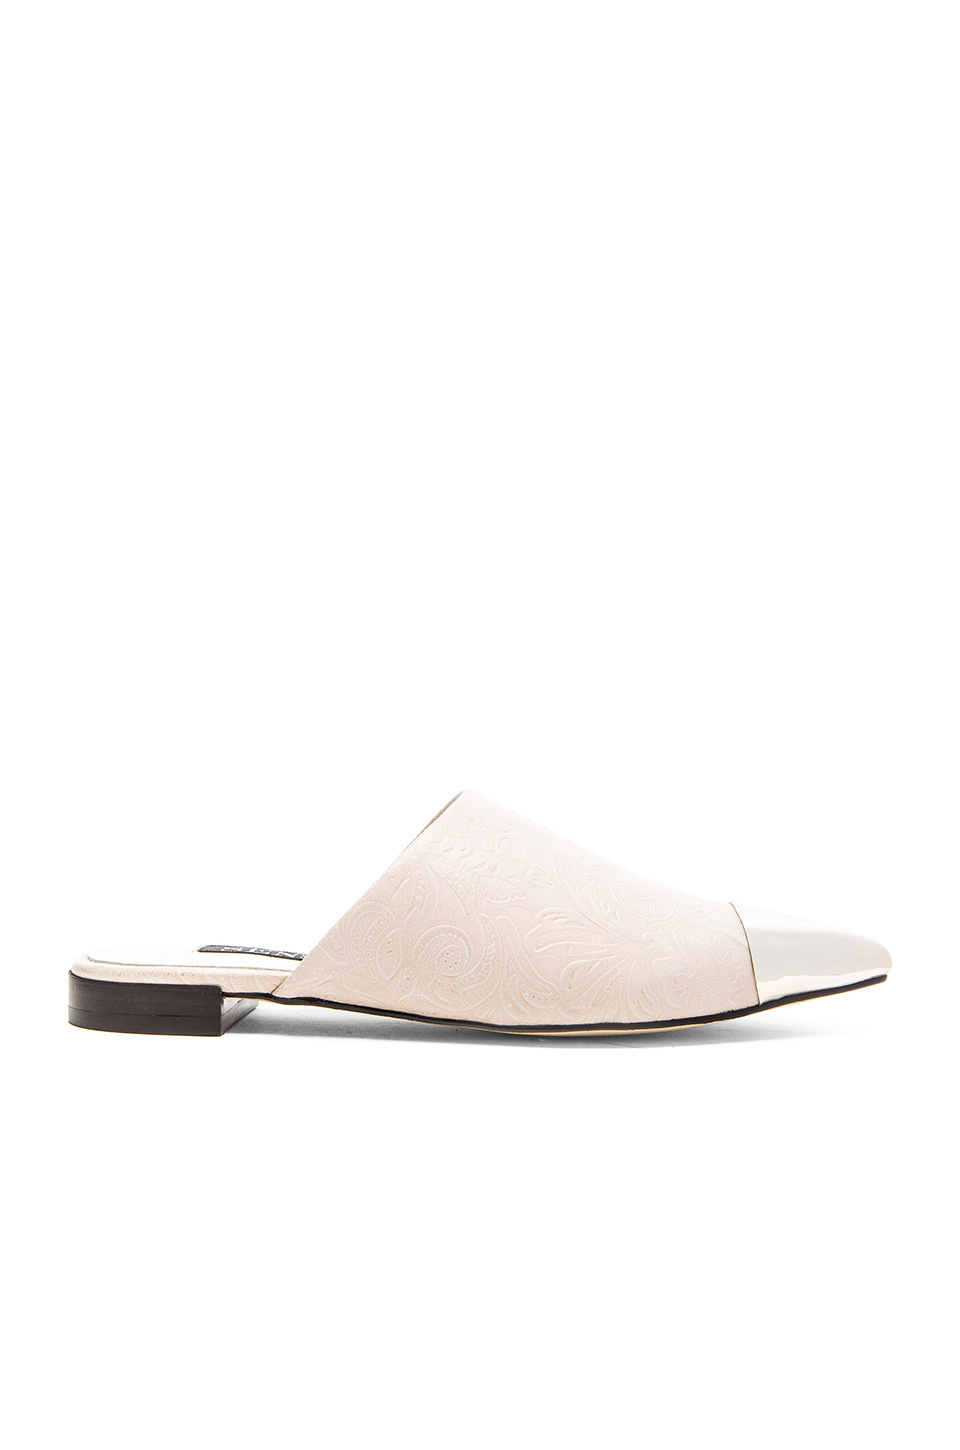 Senso Faith Slide, $68